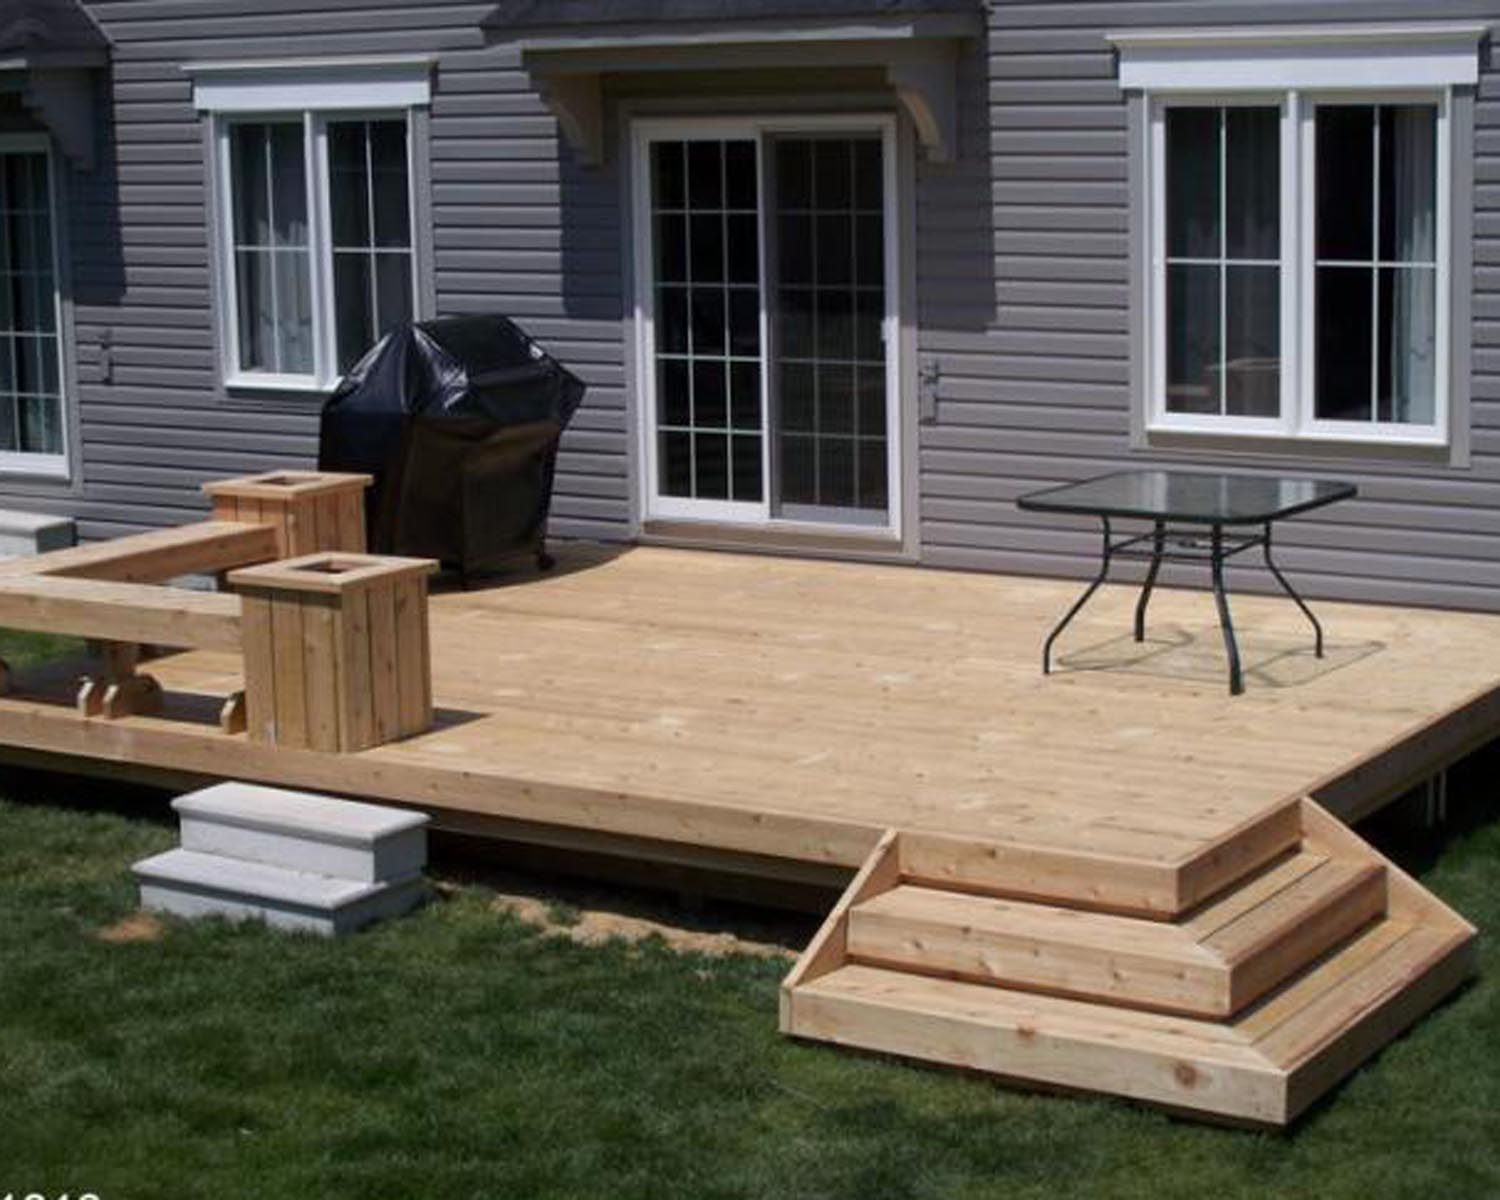 Deck ideas be more when deck building simple but functional deck ideas be more when deck building simple but functional designs can baanklon Image collections